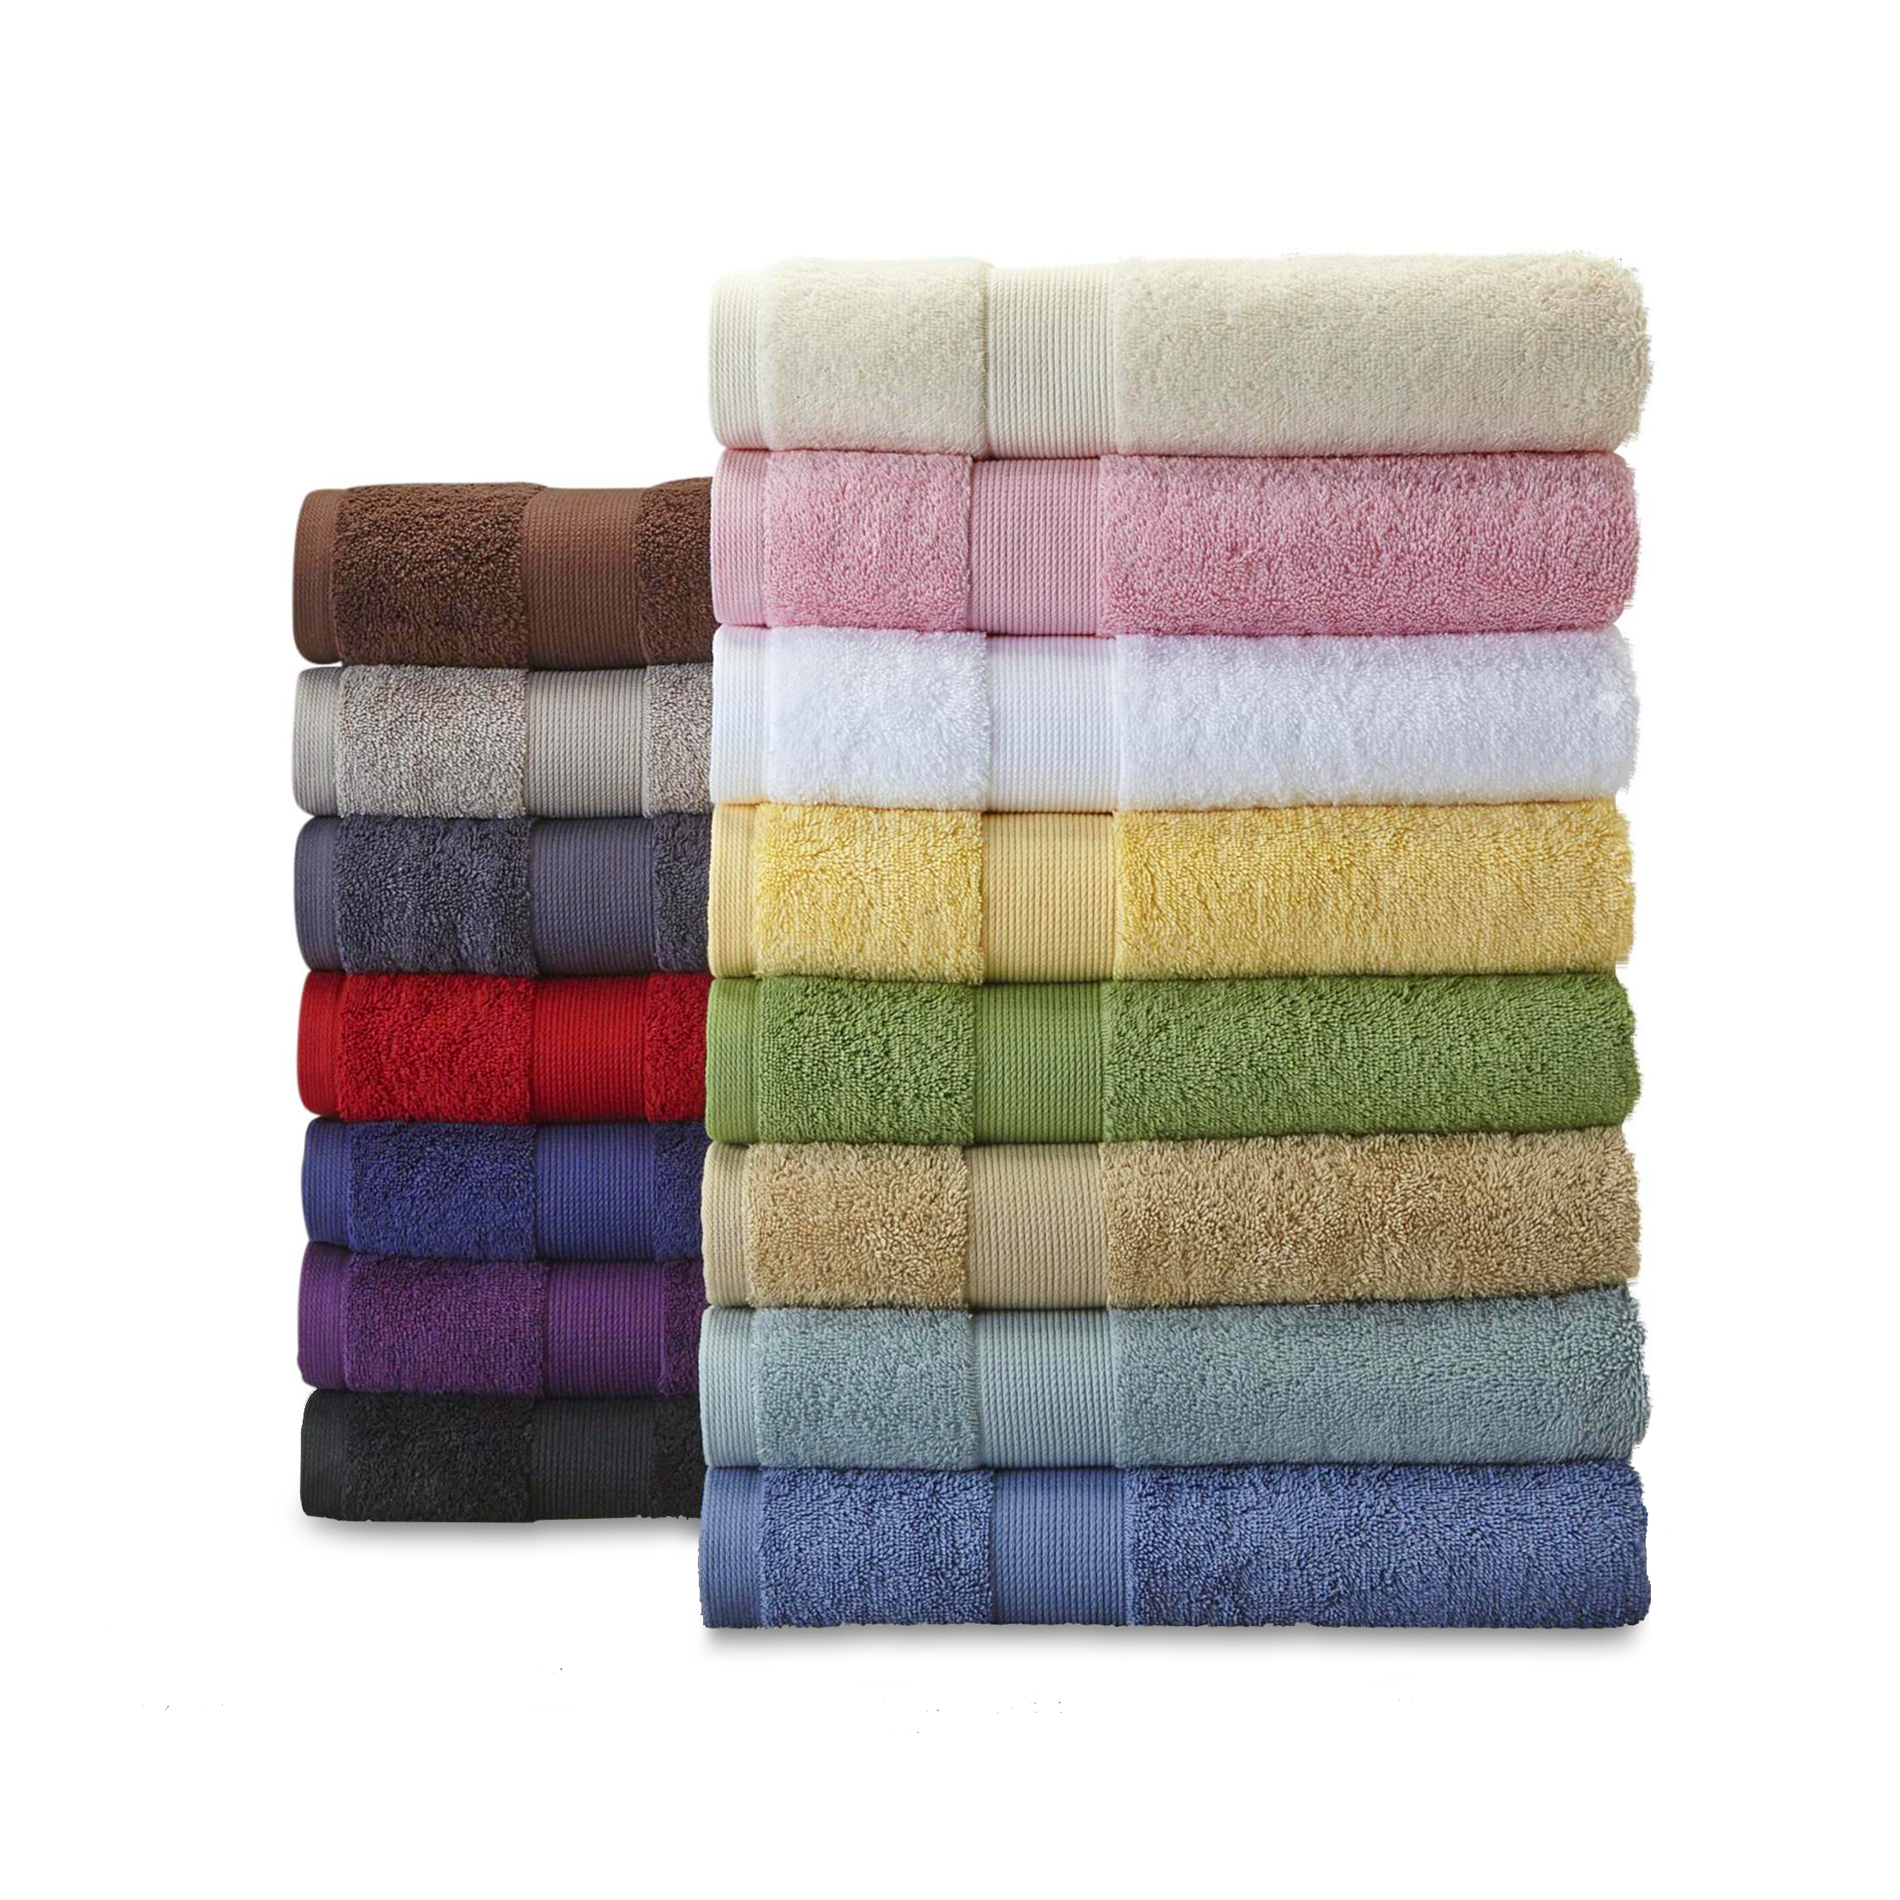 Cannon Bleach Friendly Cotton Bath Towels Hand Washcloths